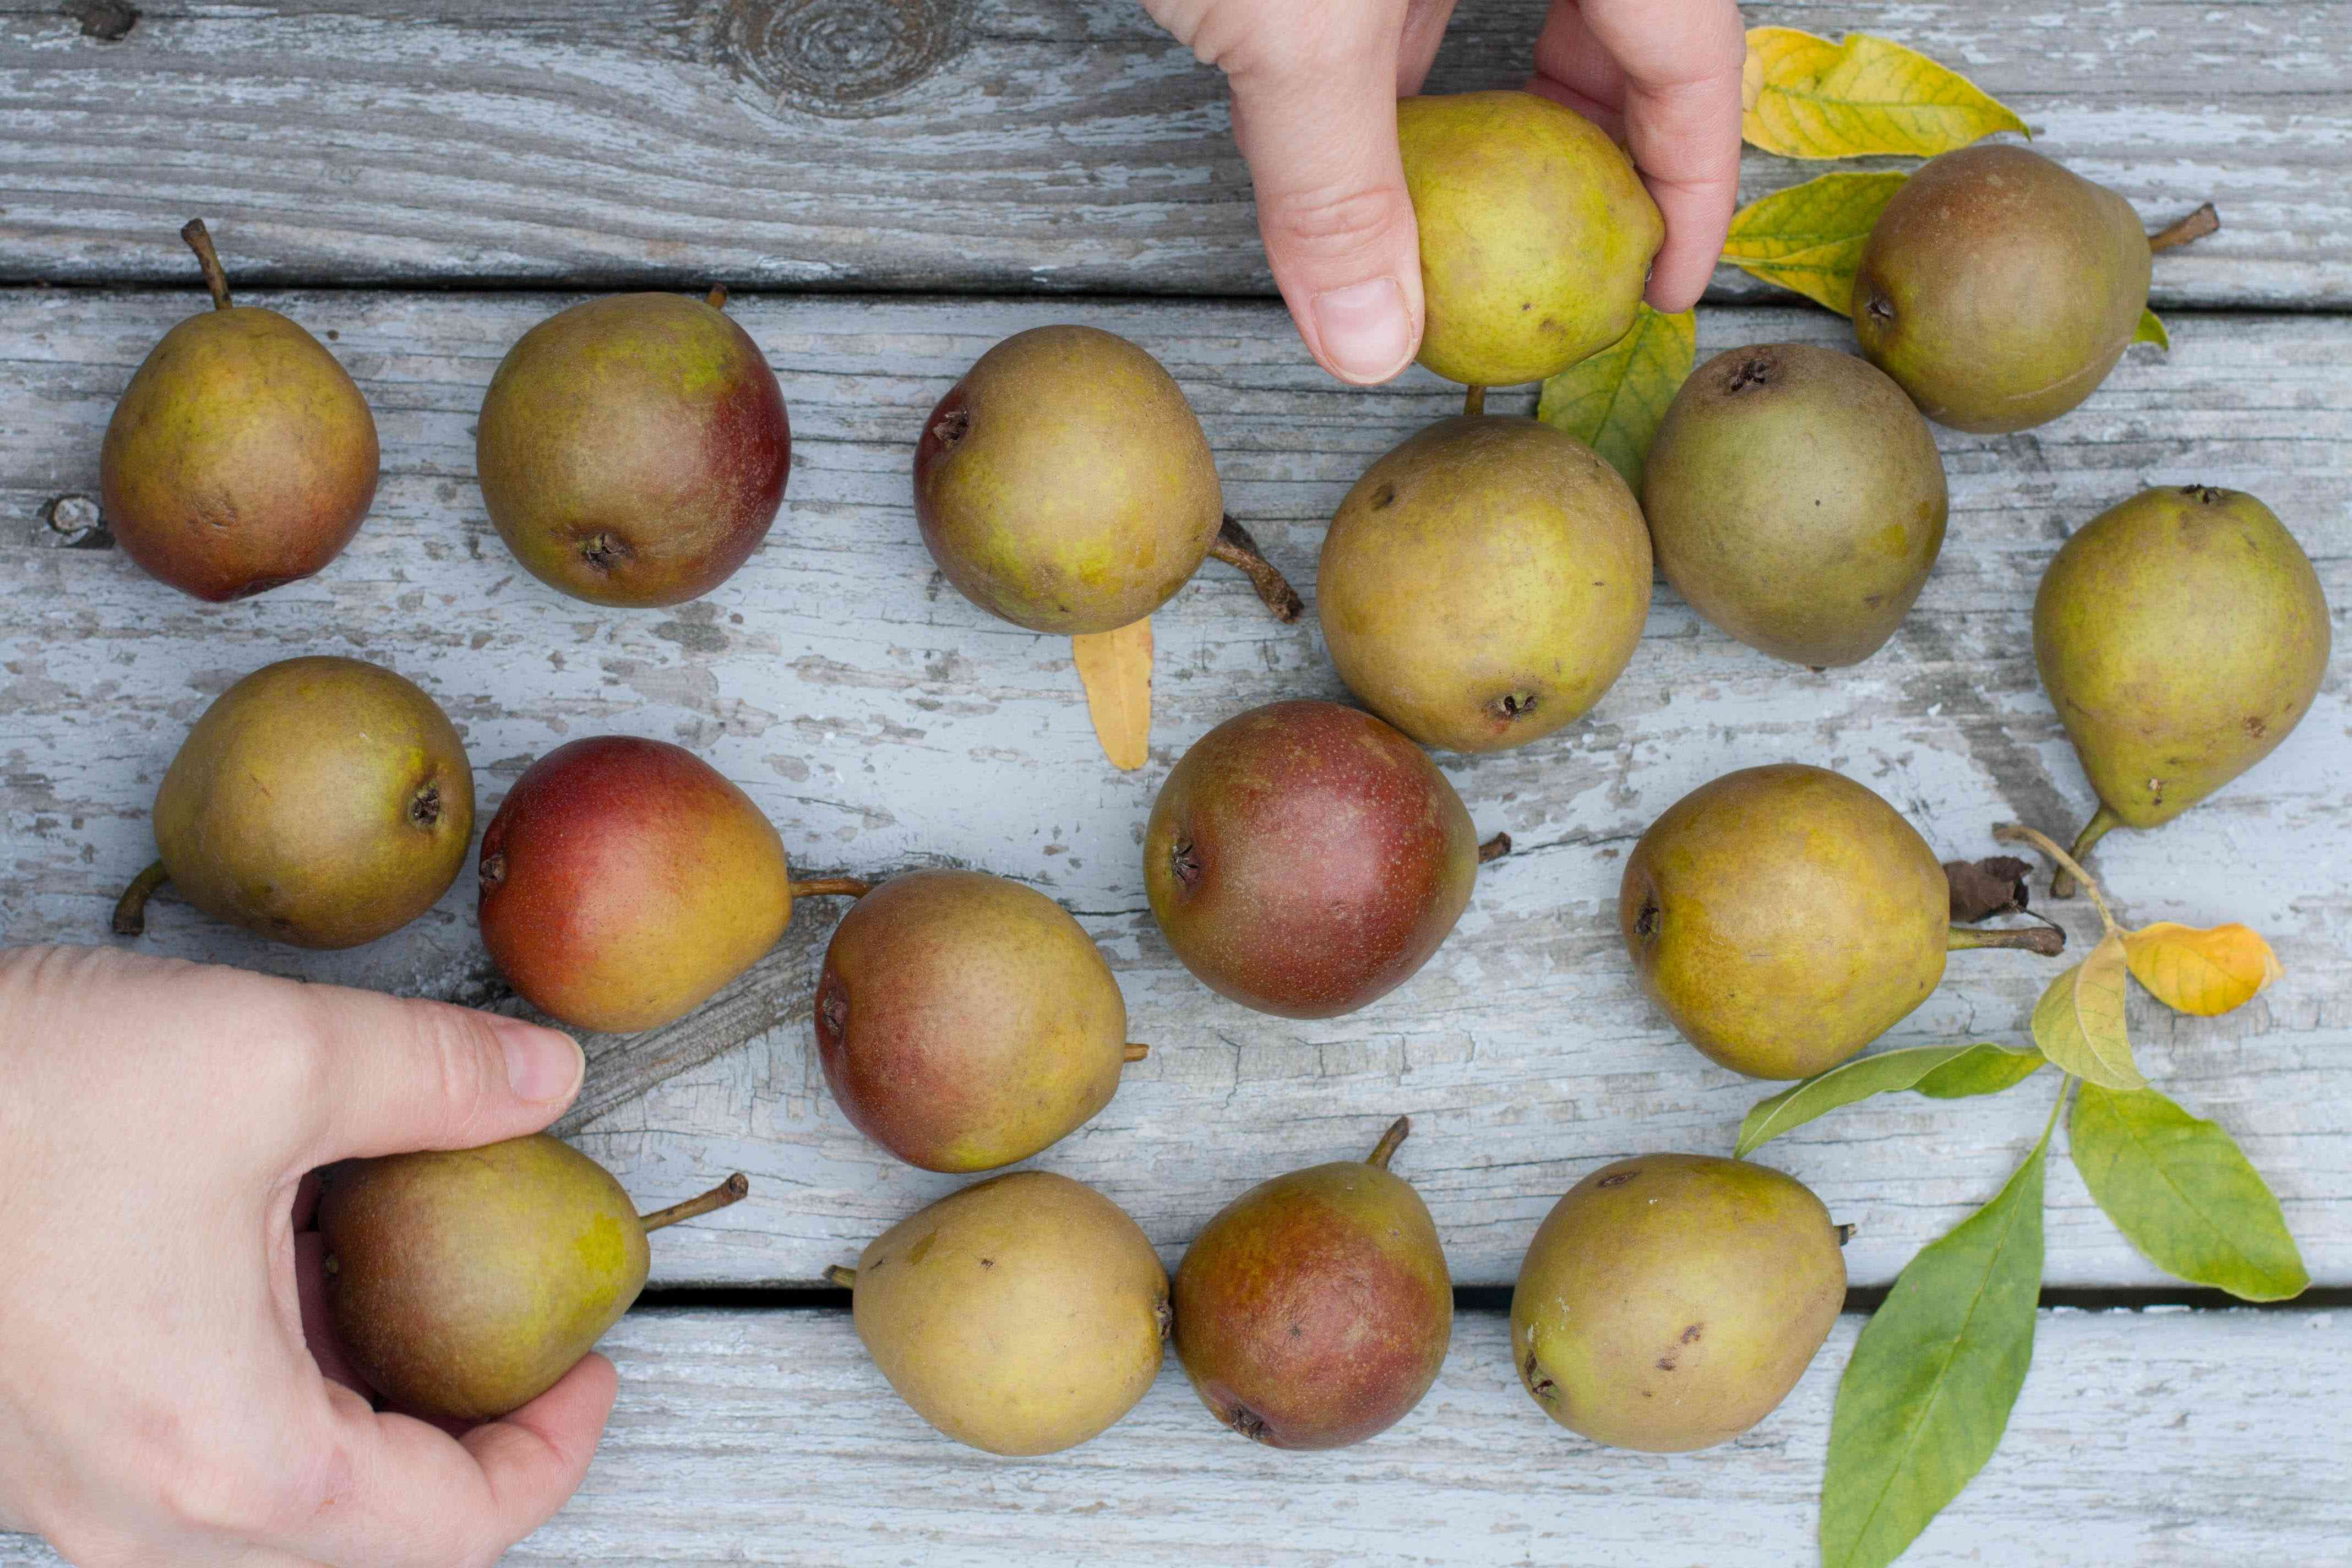 hands holding Seckel pears on a table